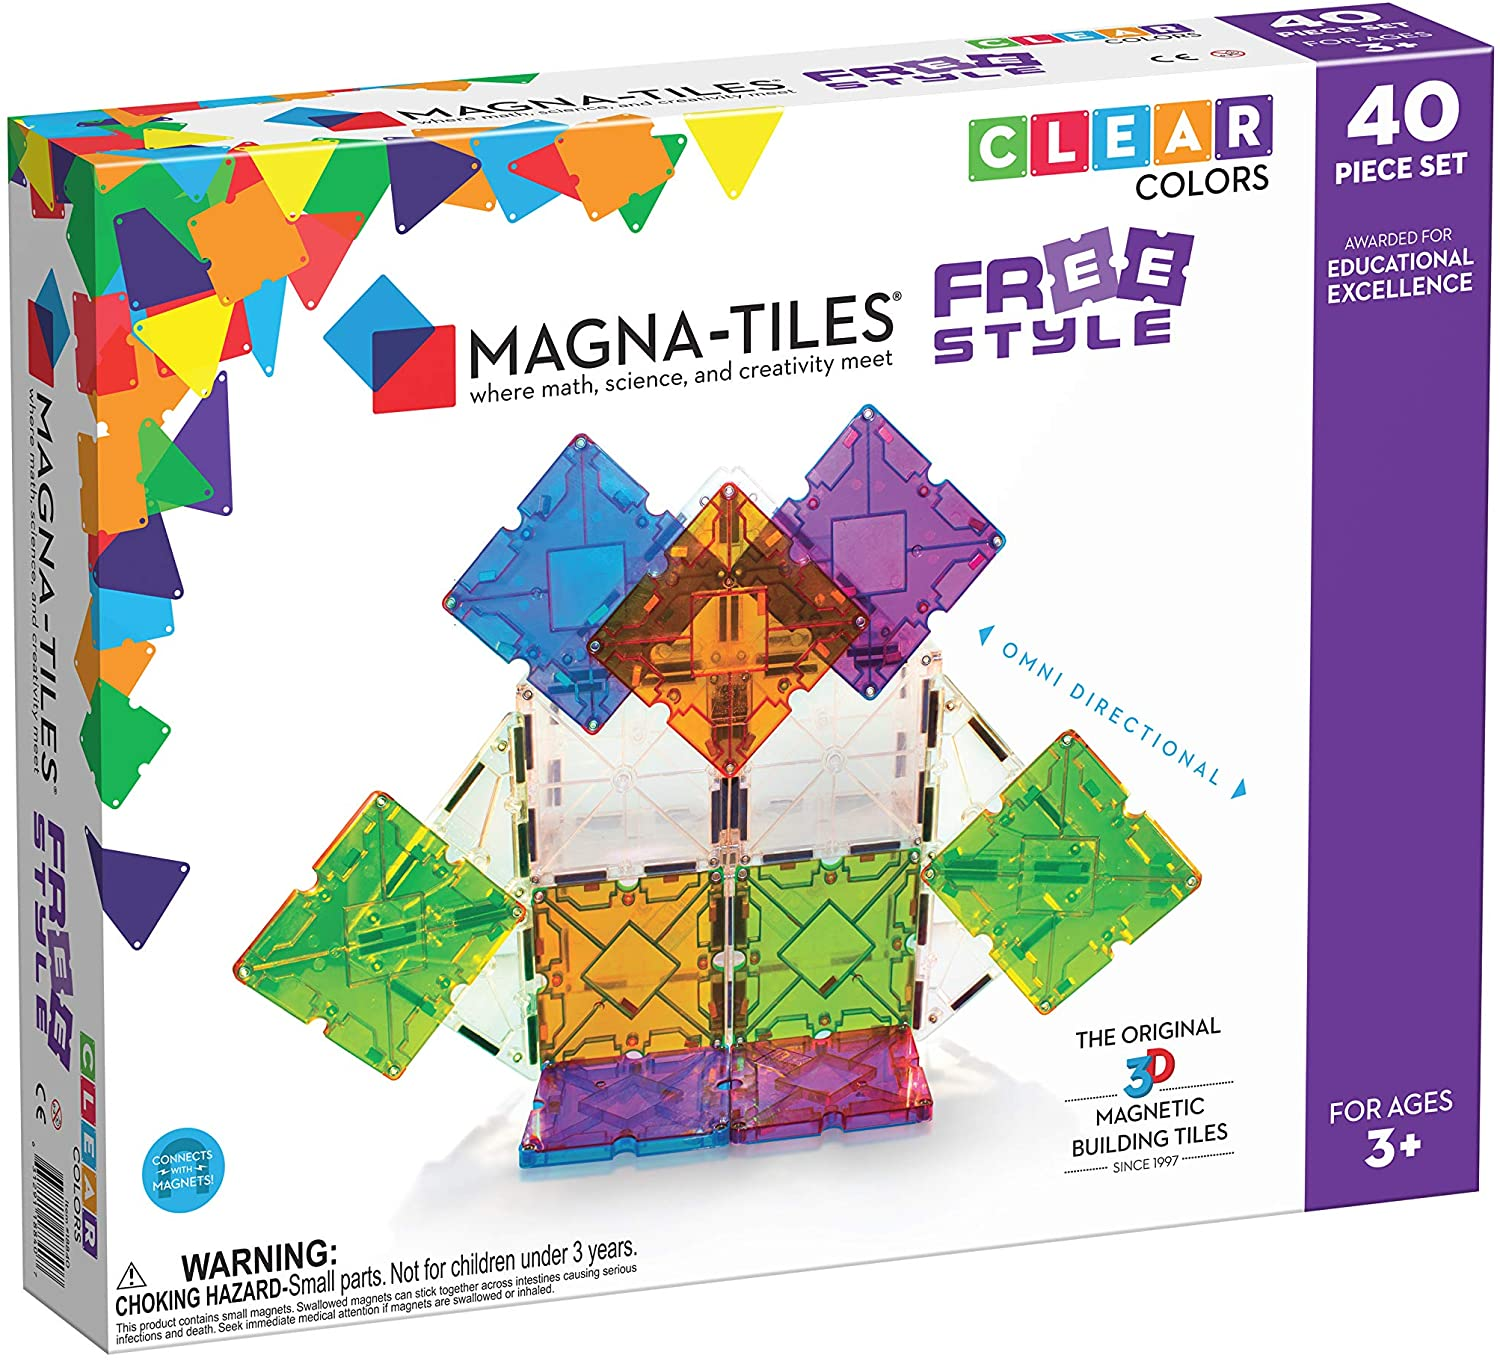 Magna-Tiles Freestyle Set NEW mart before selling ☆ The Original Tiles Magnetic Building